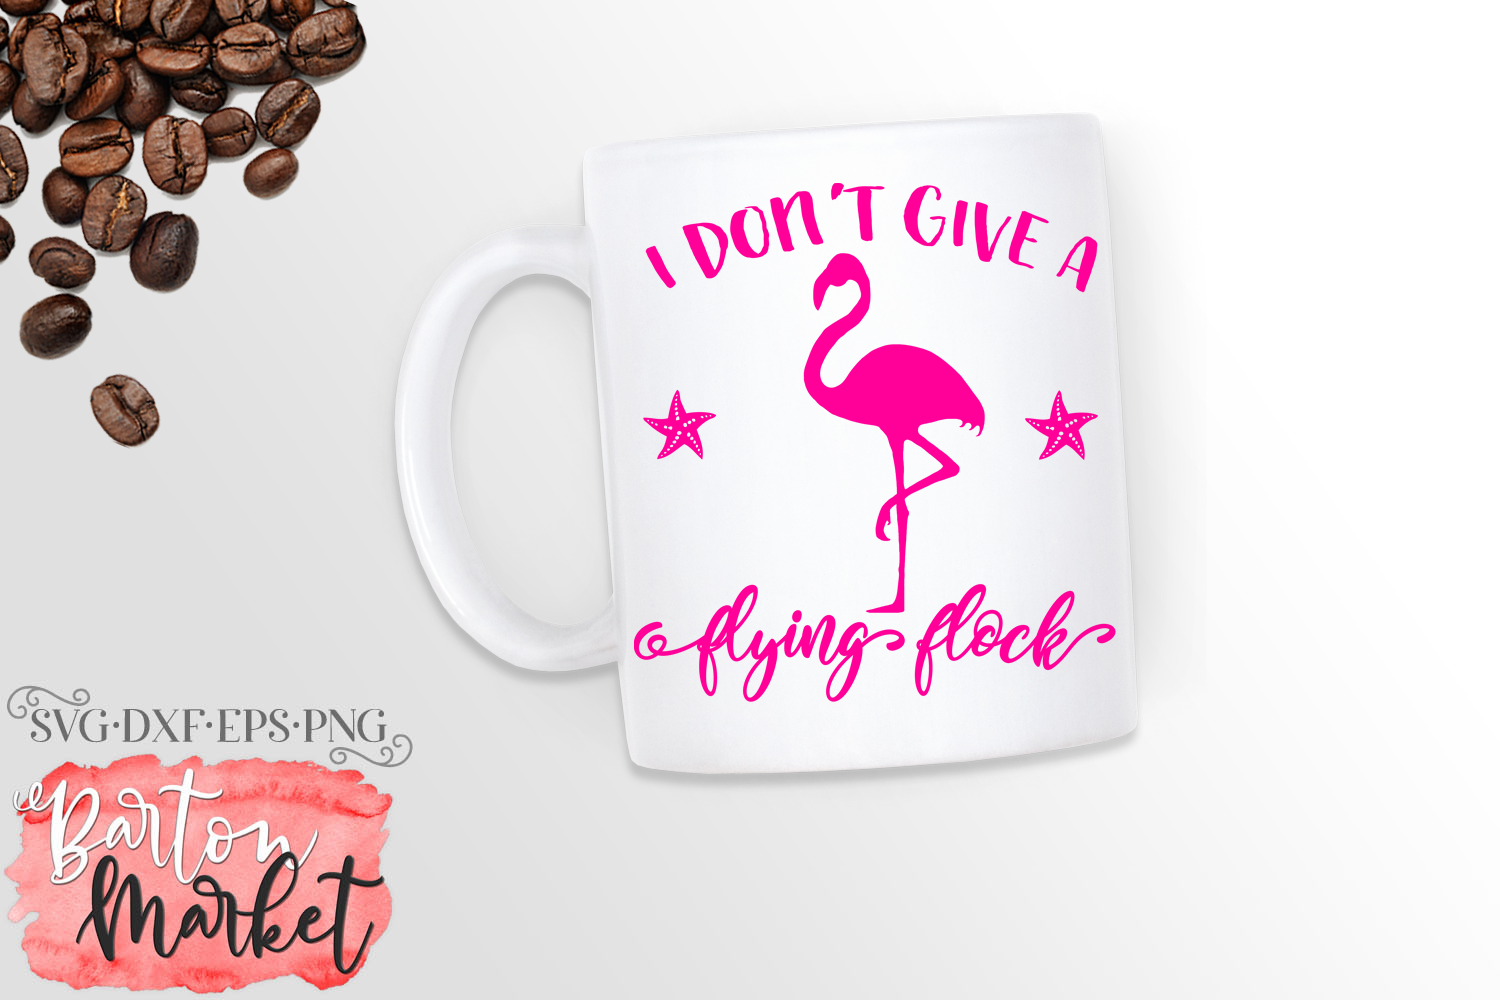 I Don't Give A Flying Flock SVG DXF EPS PNG example image 2